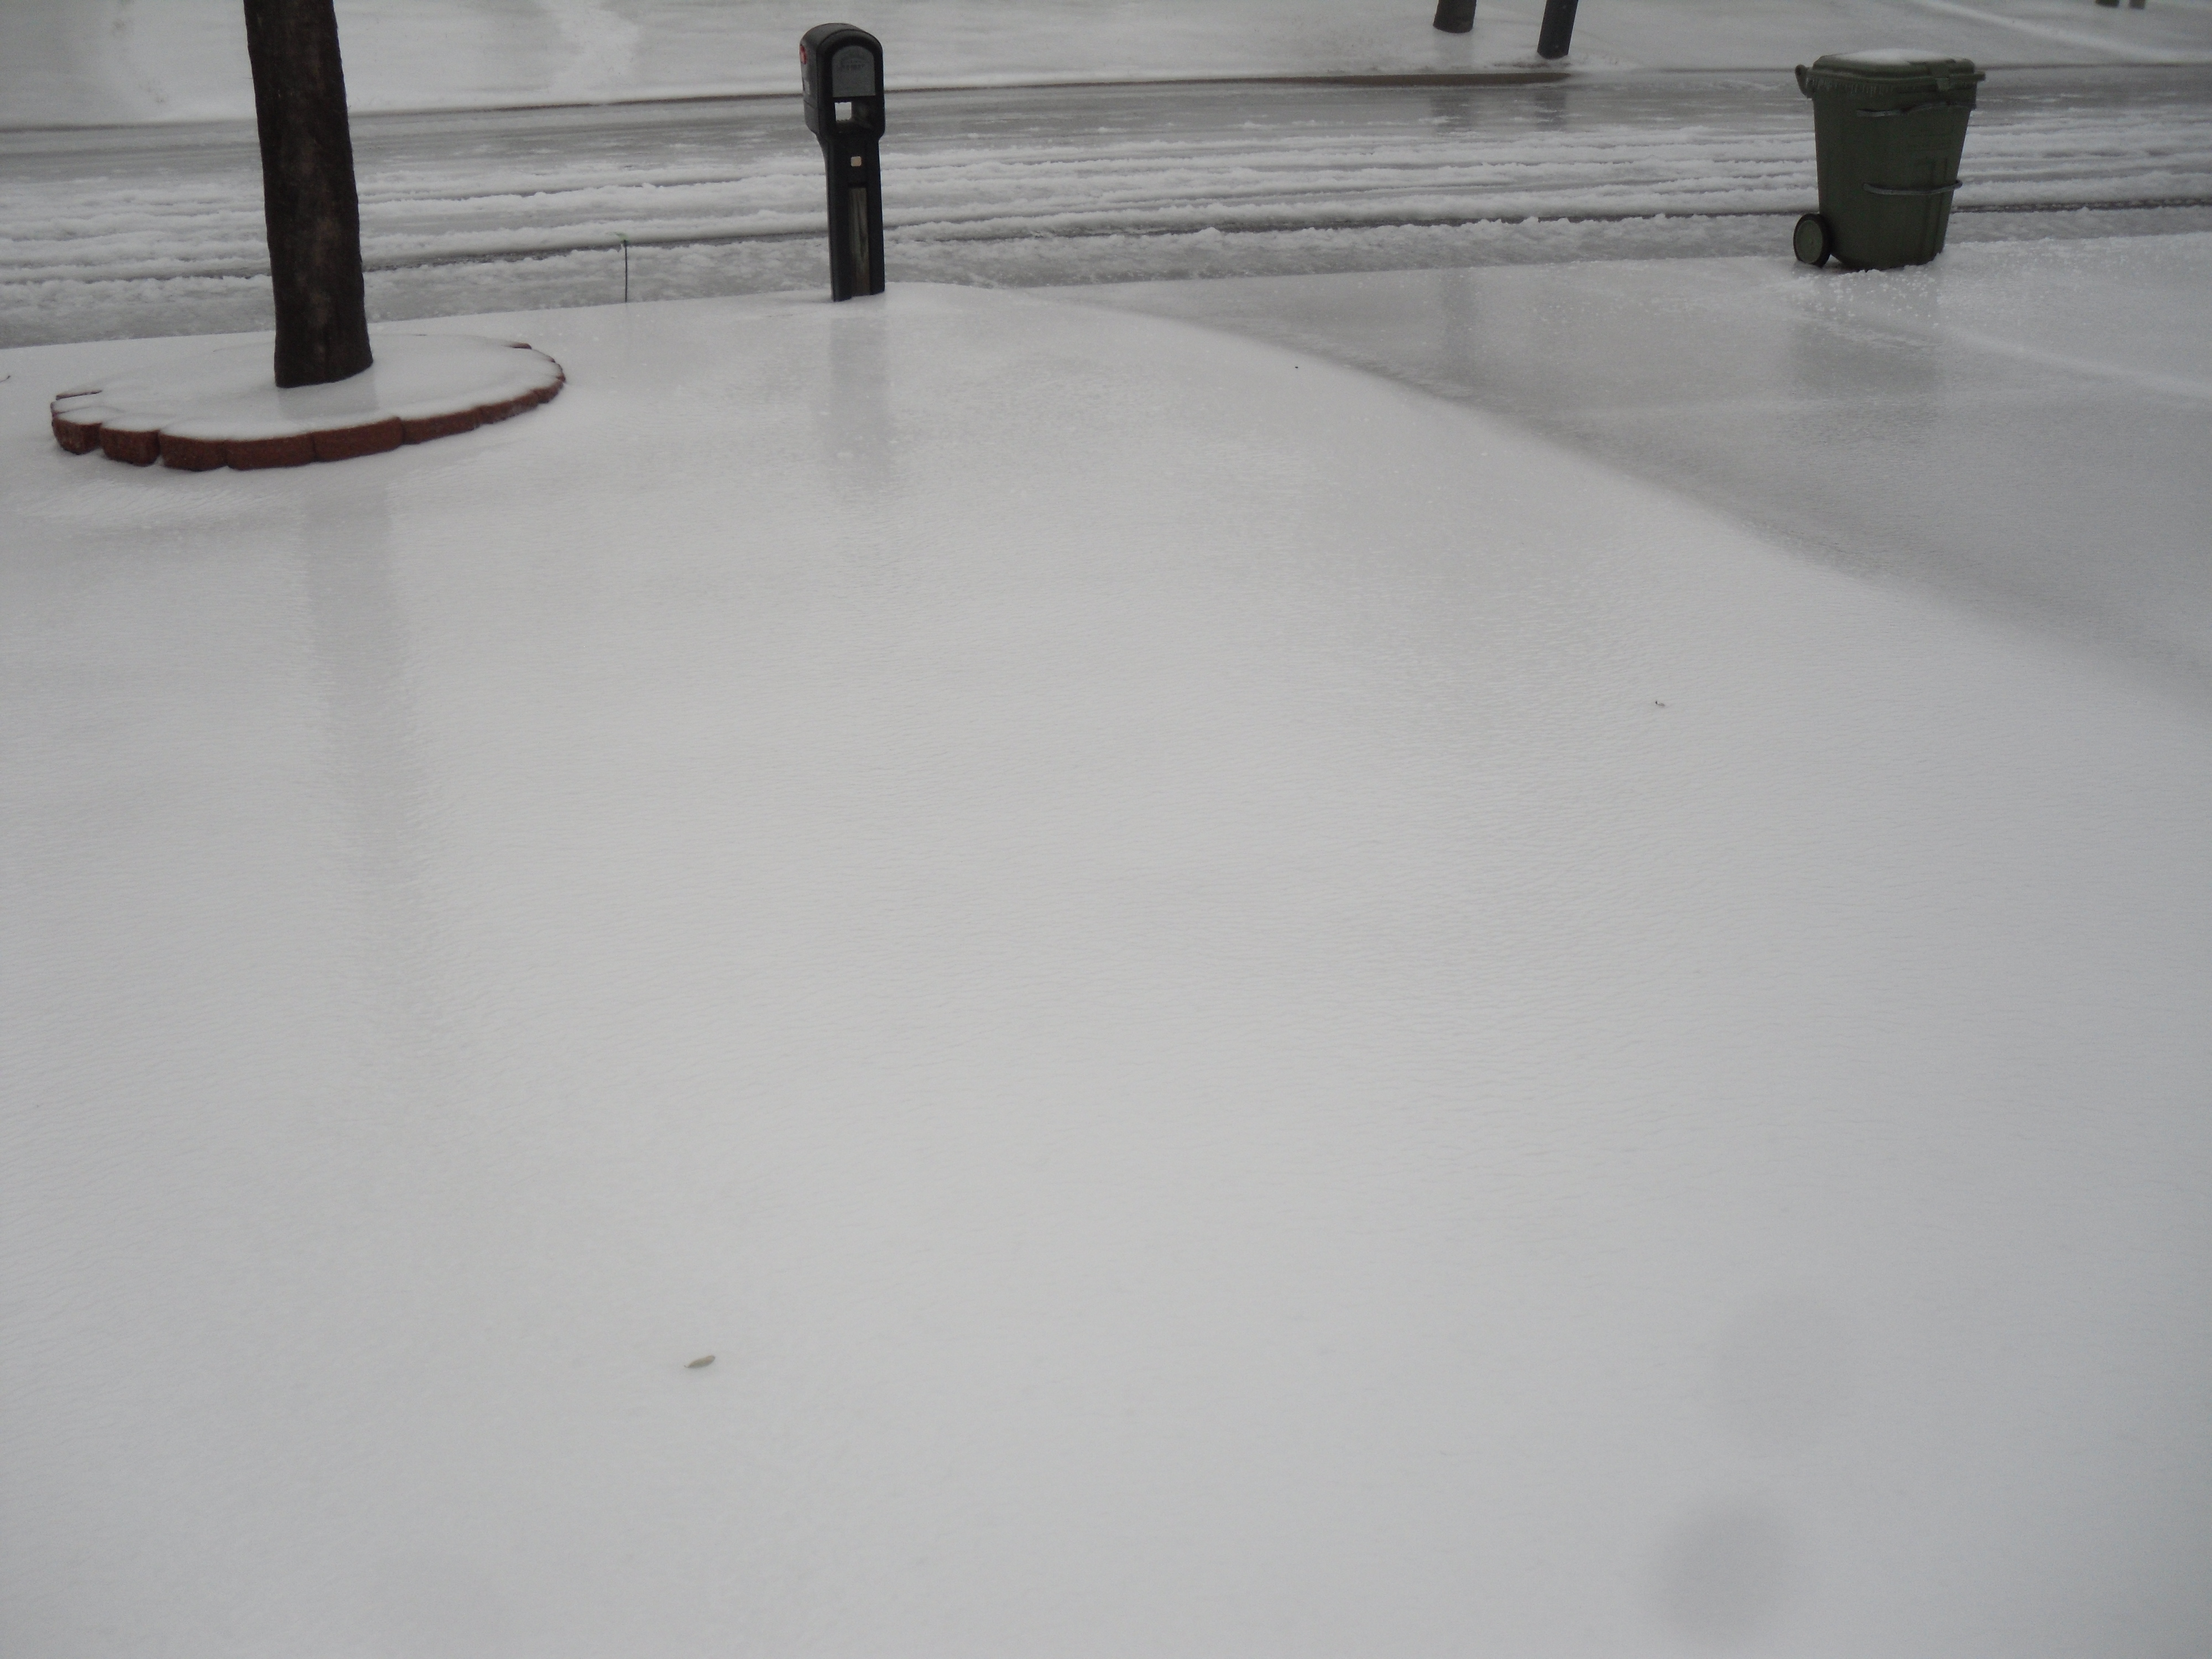 Today that snow base is covered with a sheet of ice.  Hard to get a good picture of it, but it's rock hard and slick as a skating rink.  I nearly fell on my ass several times in the process of taking this photo...